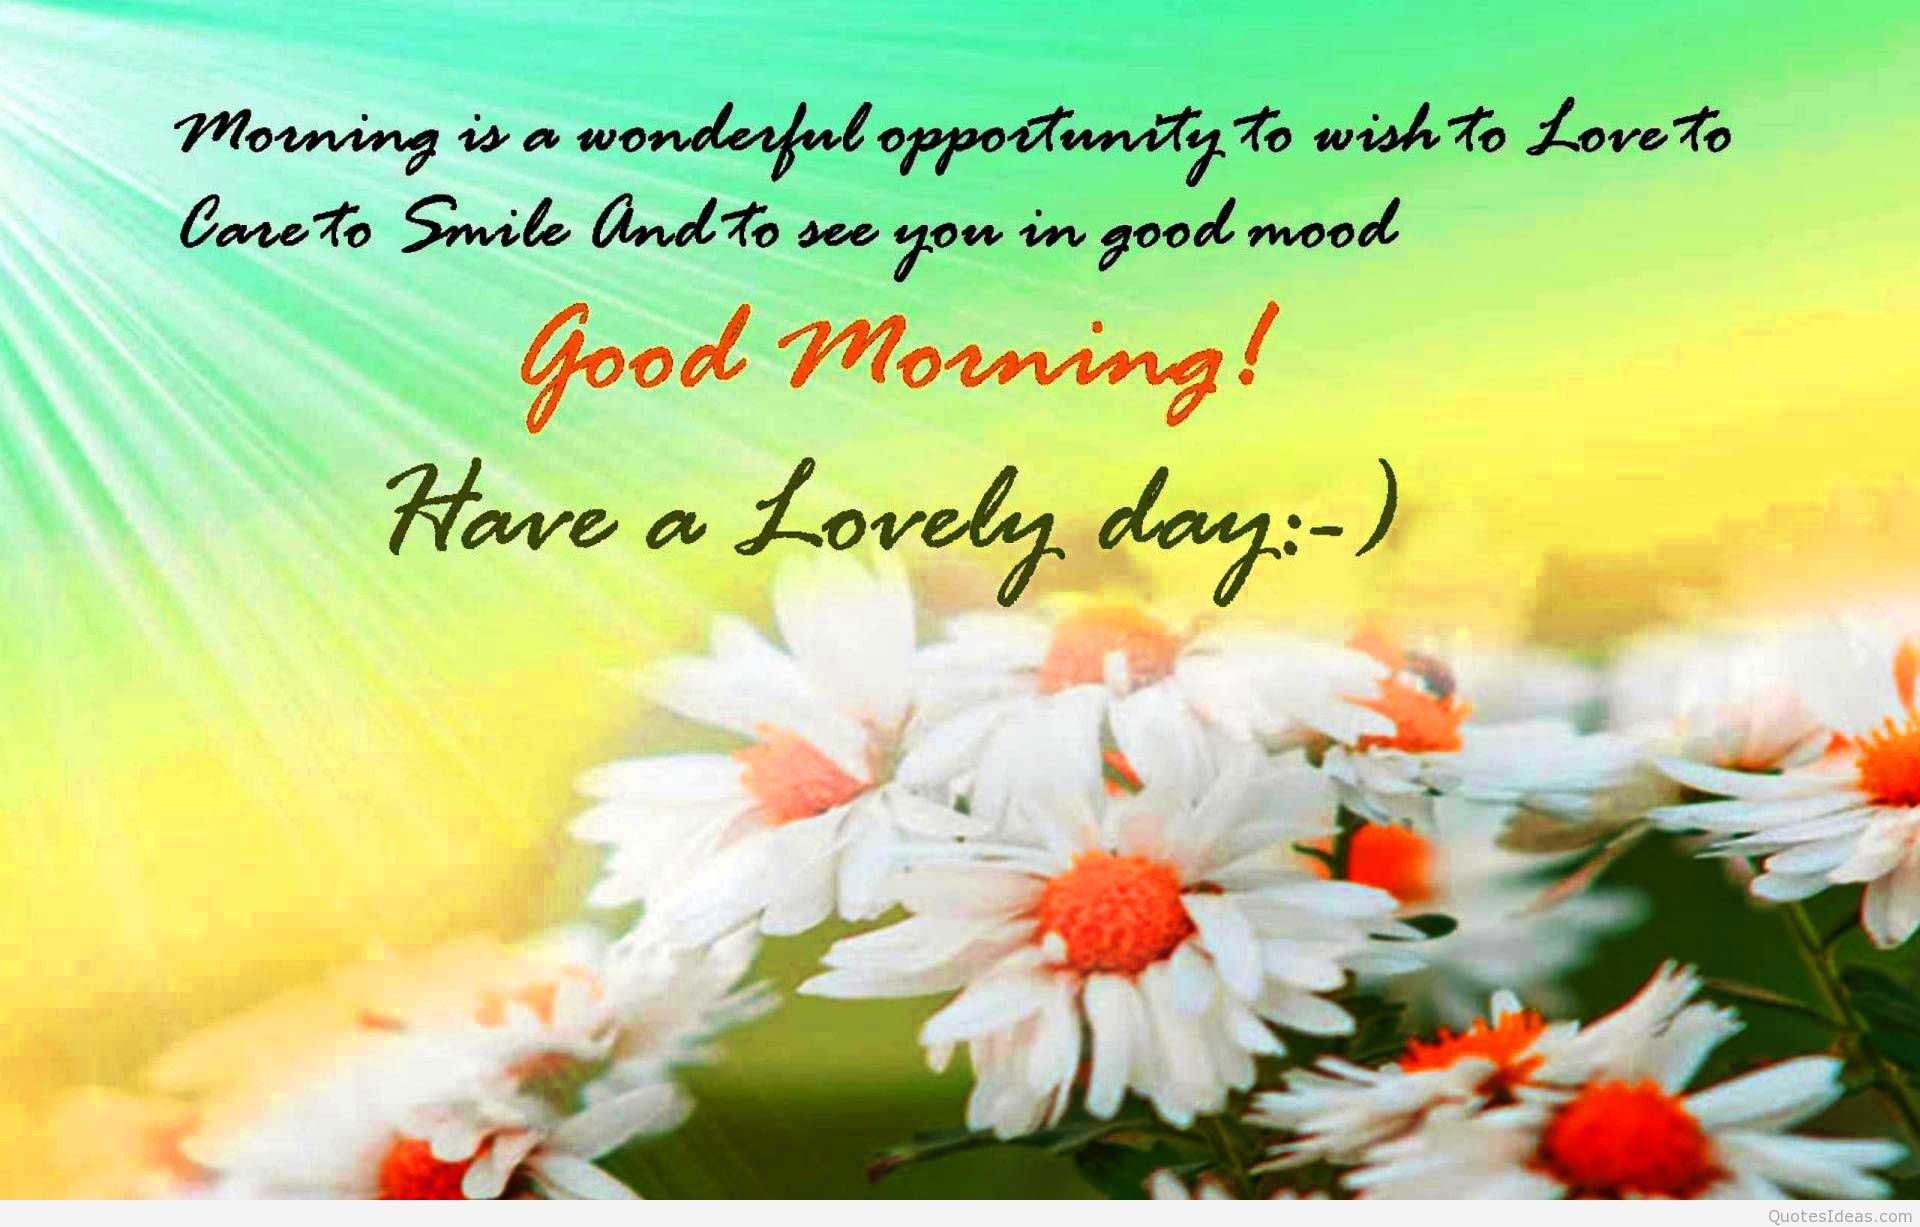 Good Morning Wishes Wallpaper ·â'